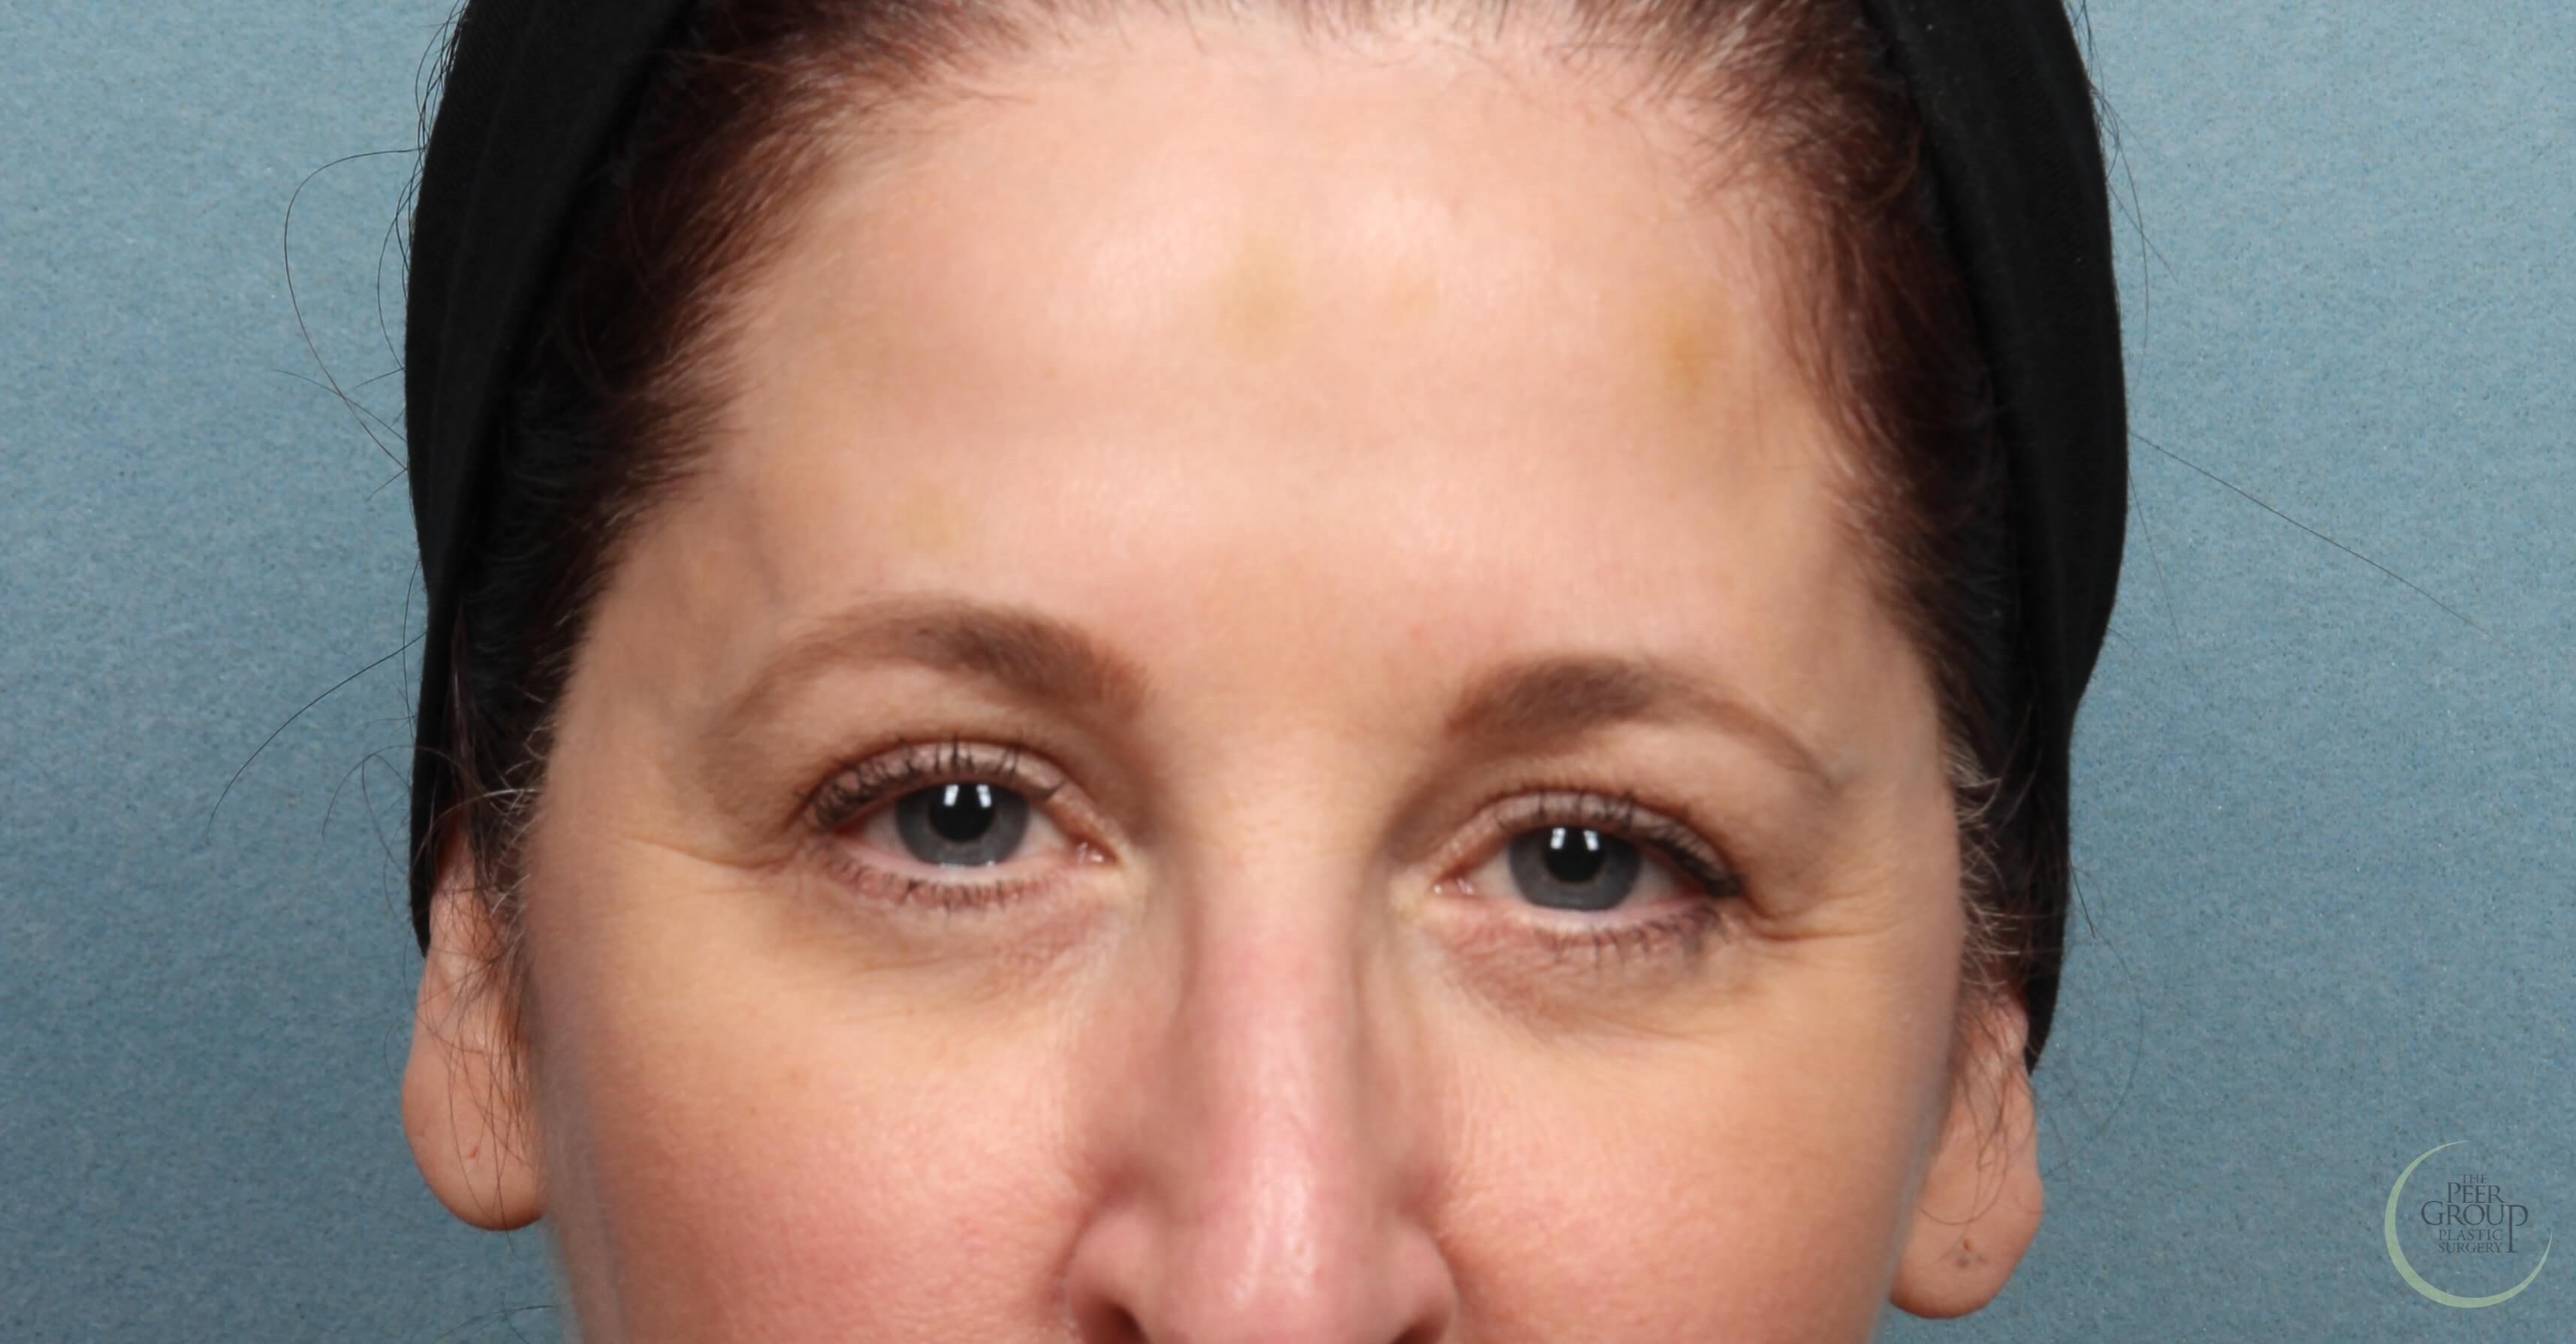 New Jersey Botox After Botox